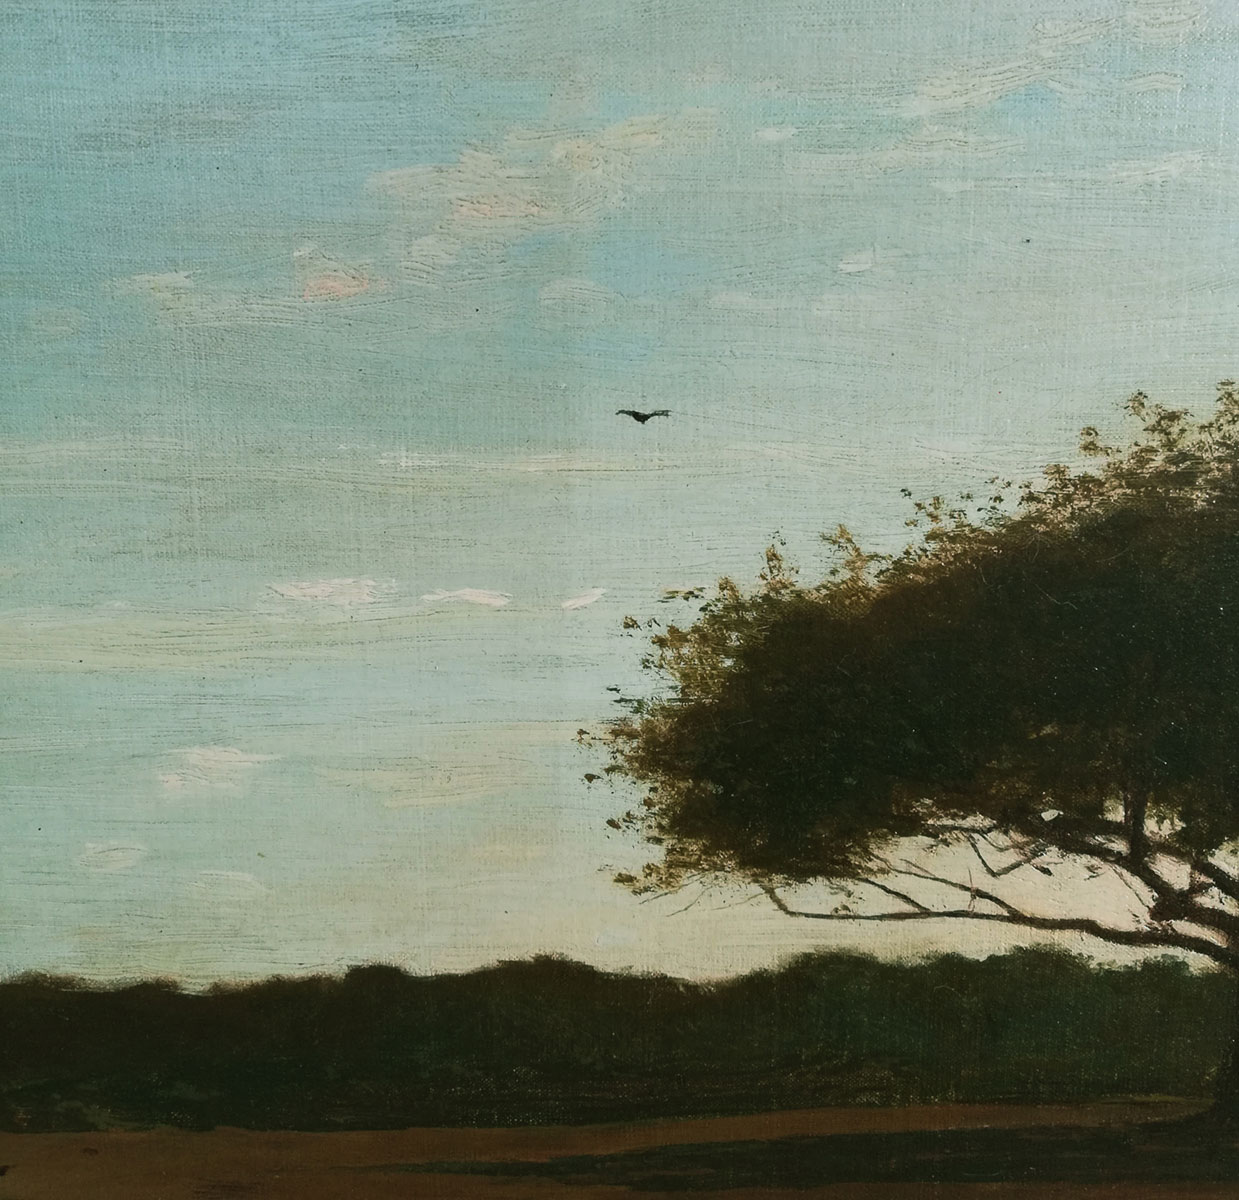 A closer look of a tree and bird in the background with the left side of the image a darker shade (prior to surface cleaning) than the lighter right side (after surface cleaning).